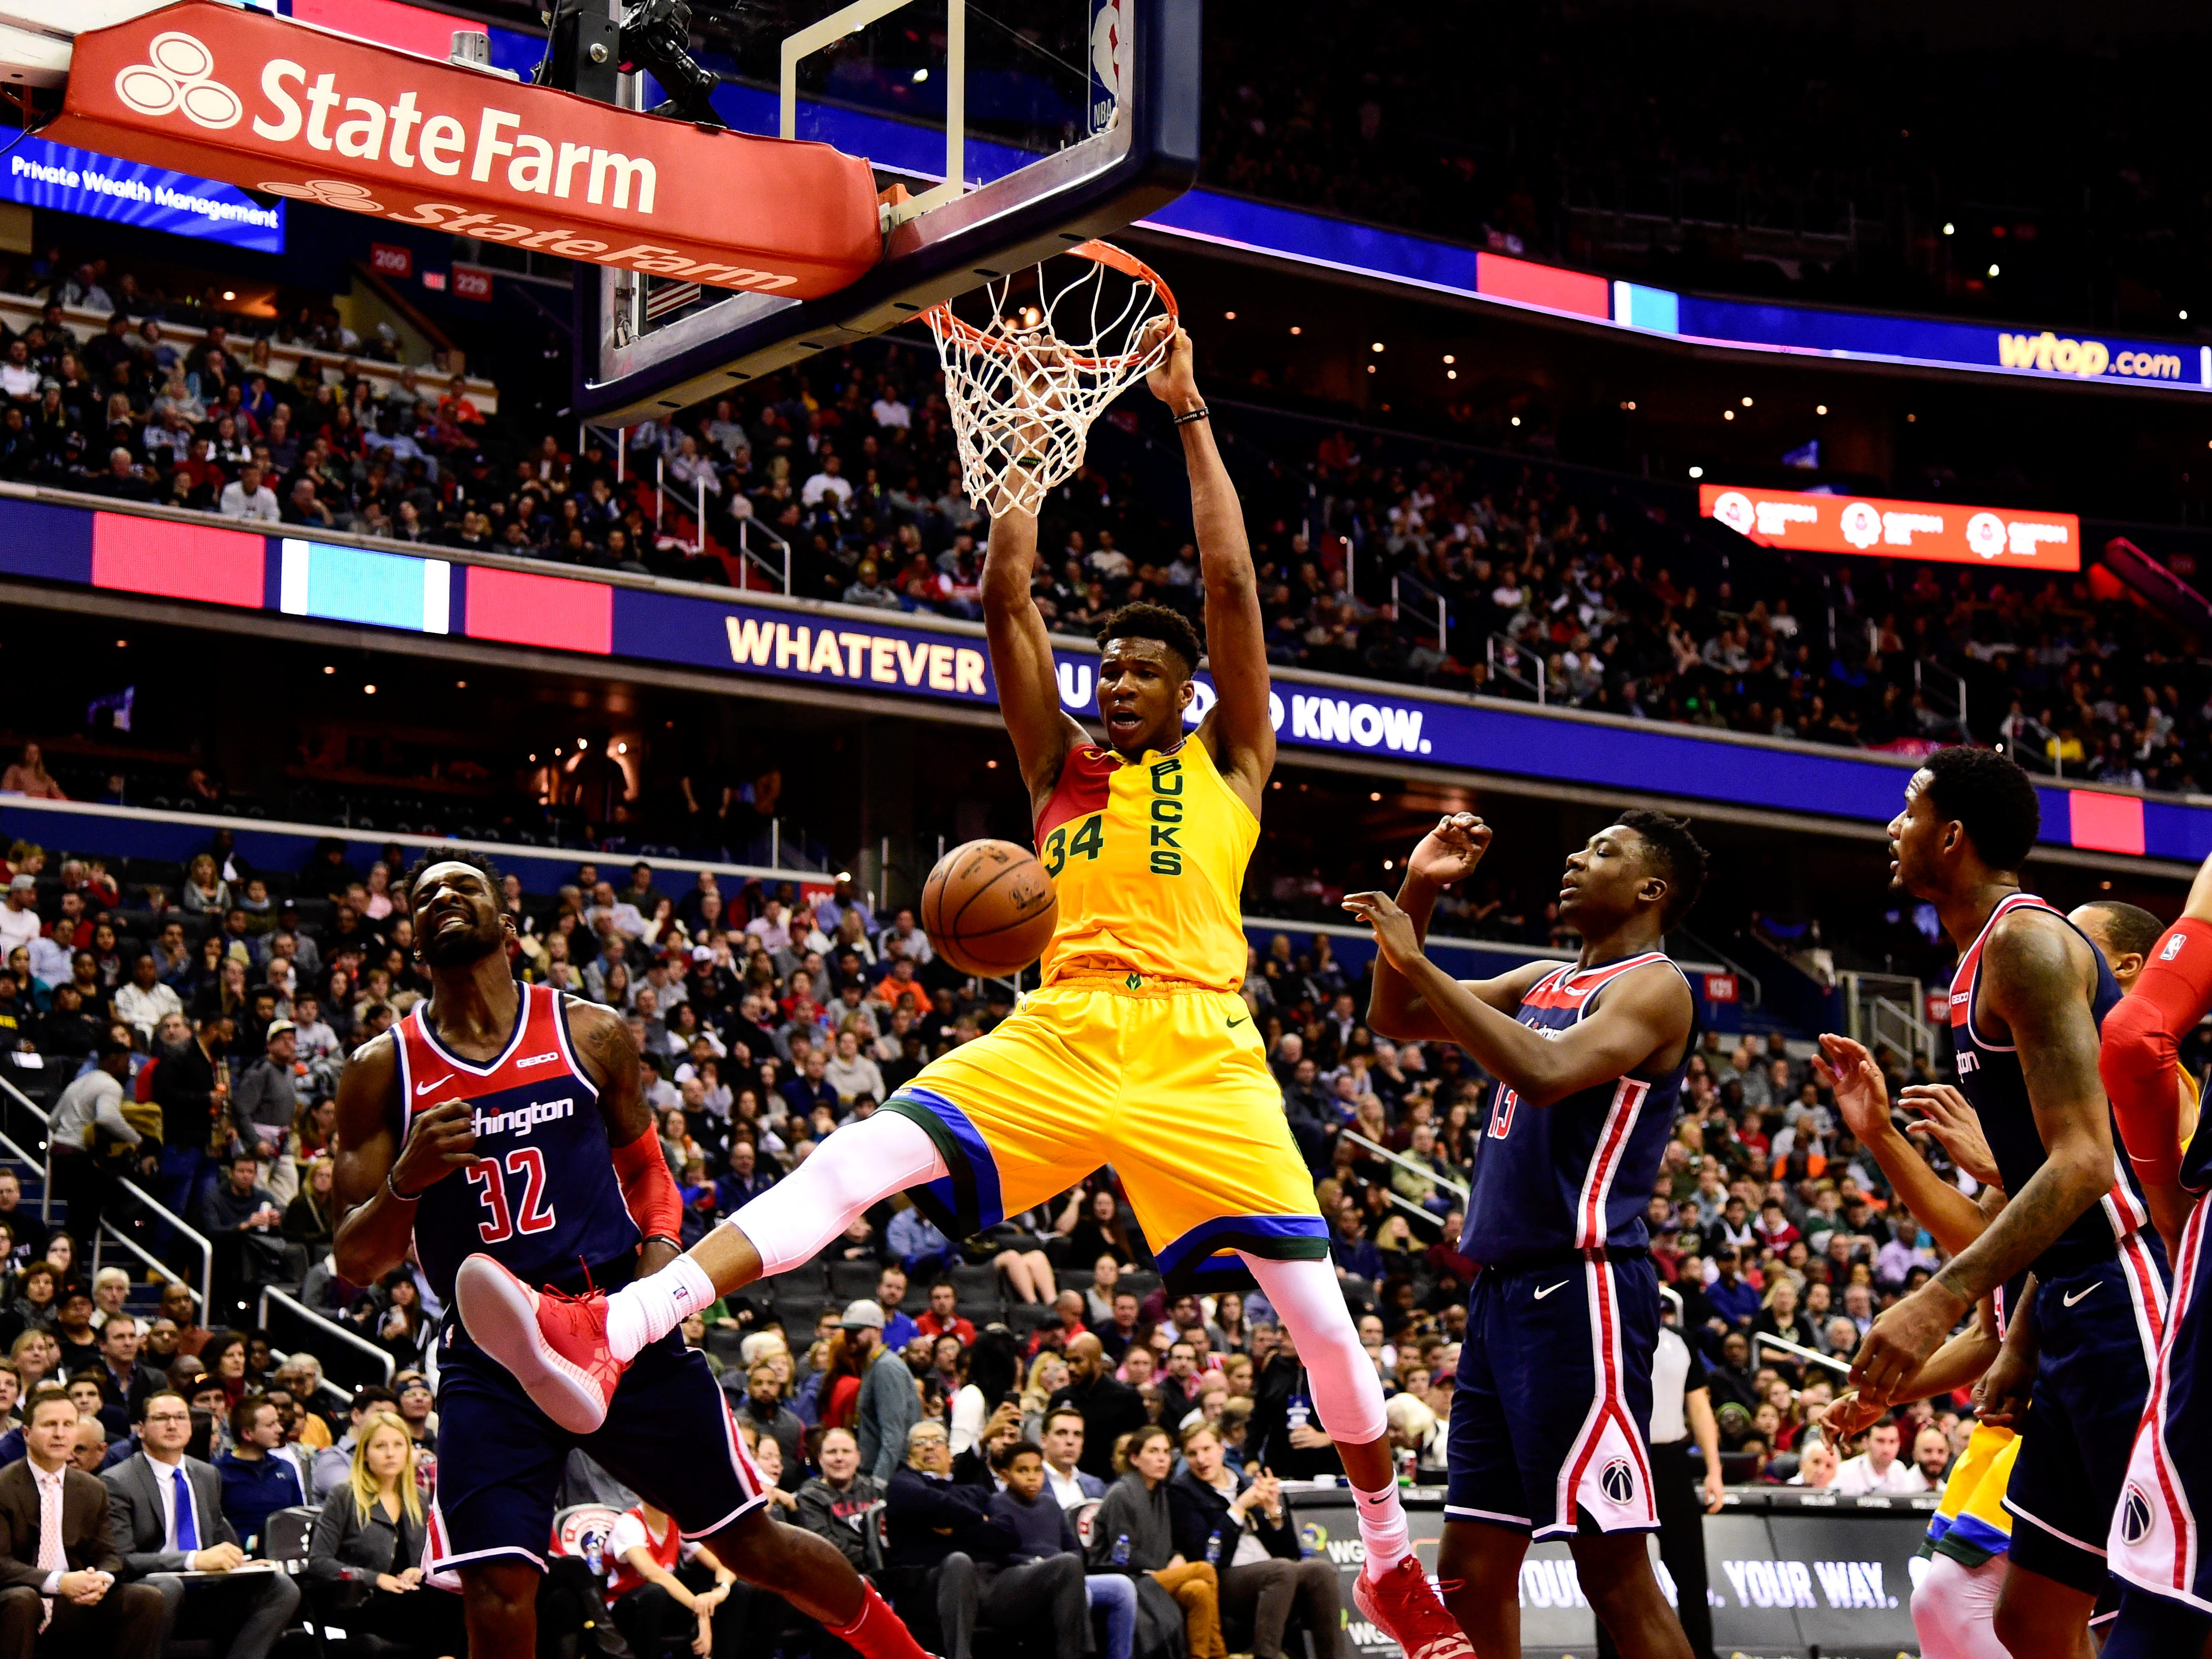 Giannis Antetokounmpo of the Bucks throws down a dunk as a quartet of Wizards players look on during the second quarter Saturday.